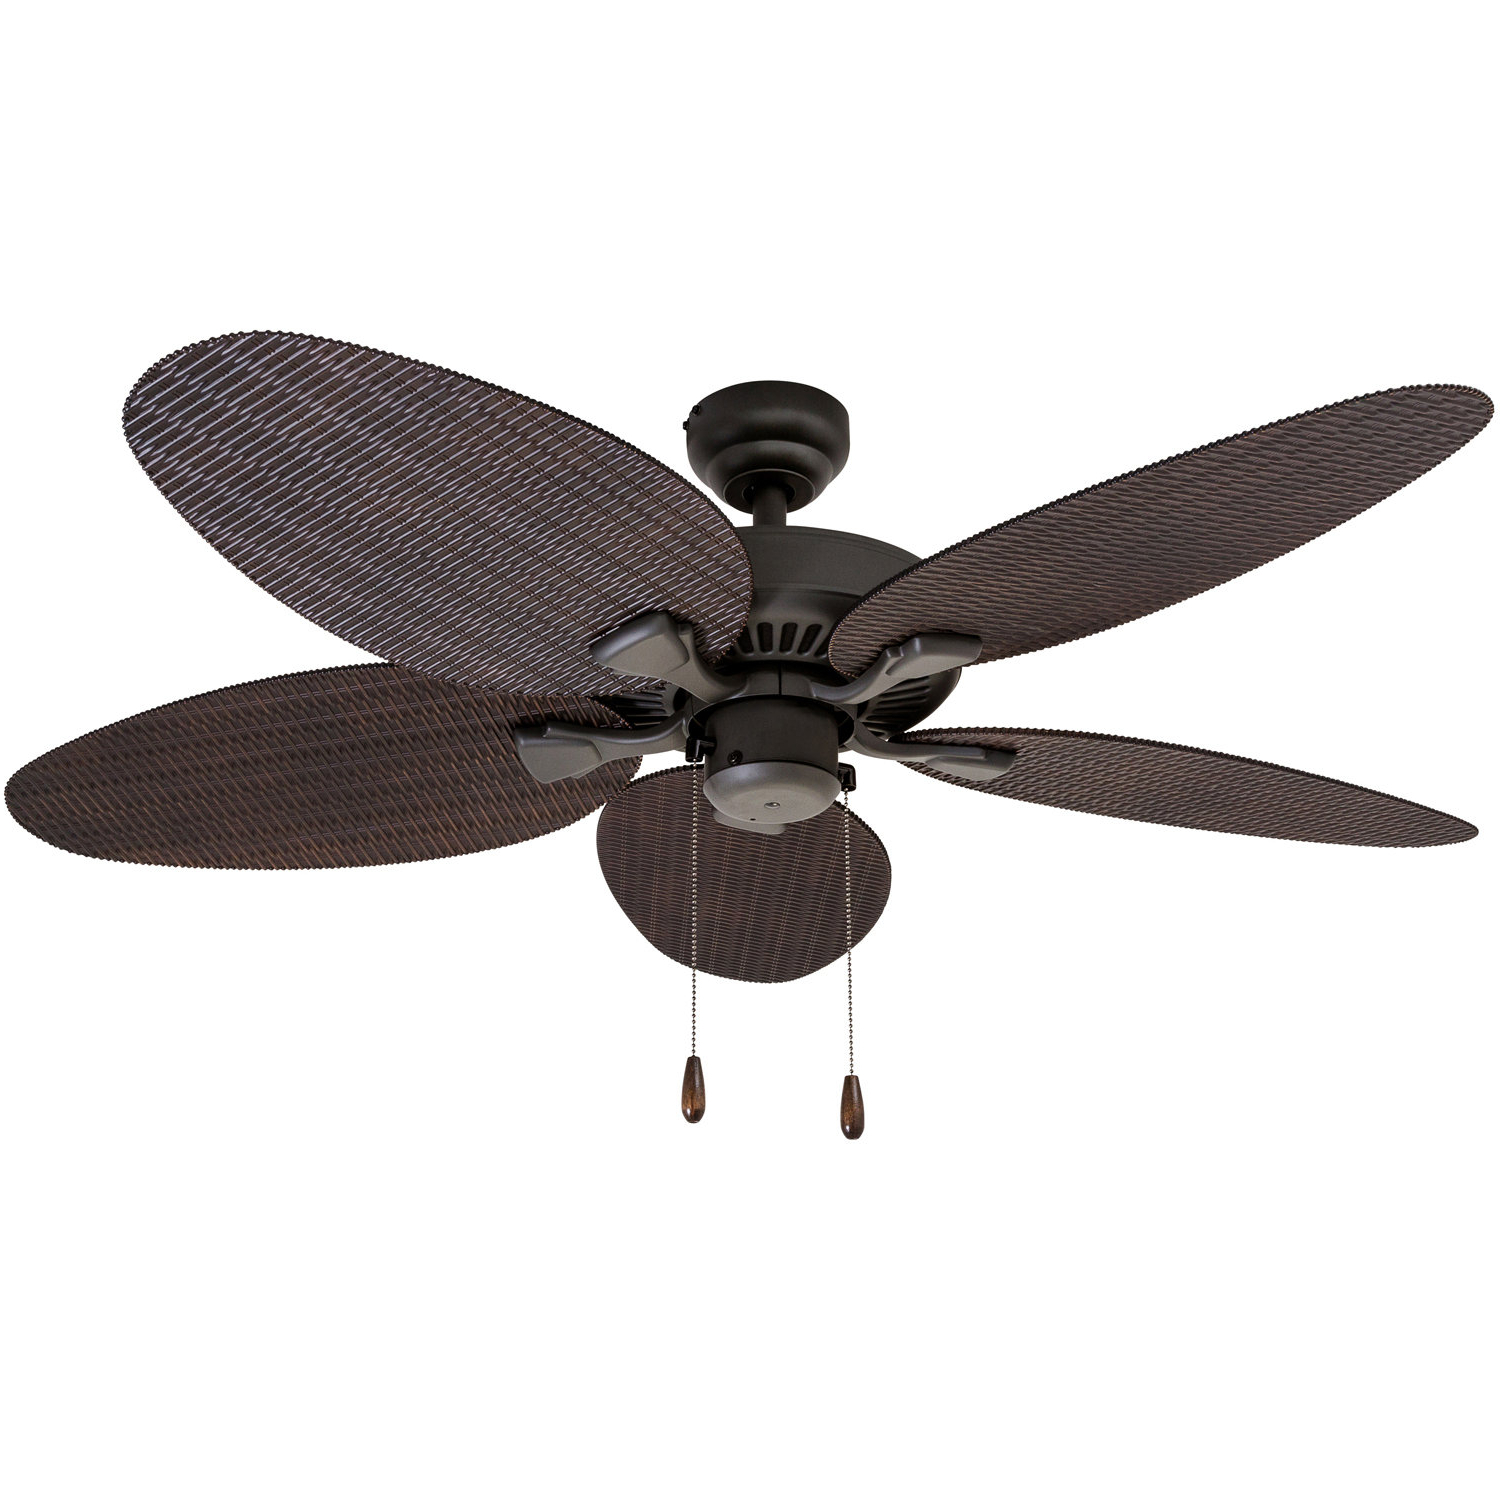 "Kalea 5 Blade Outdoor Ceiling Fans With Regard To 2019 48"" Kalea 5 Blade Outdoor Ceiling Fan (View 2 of 20)"